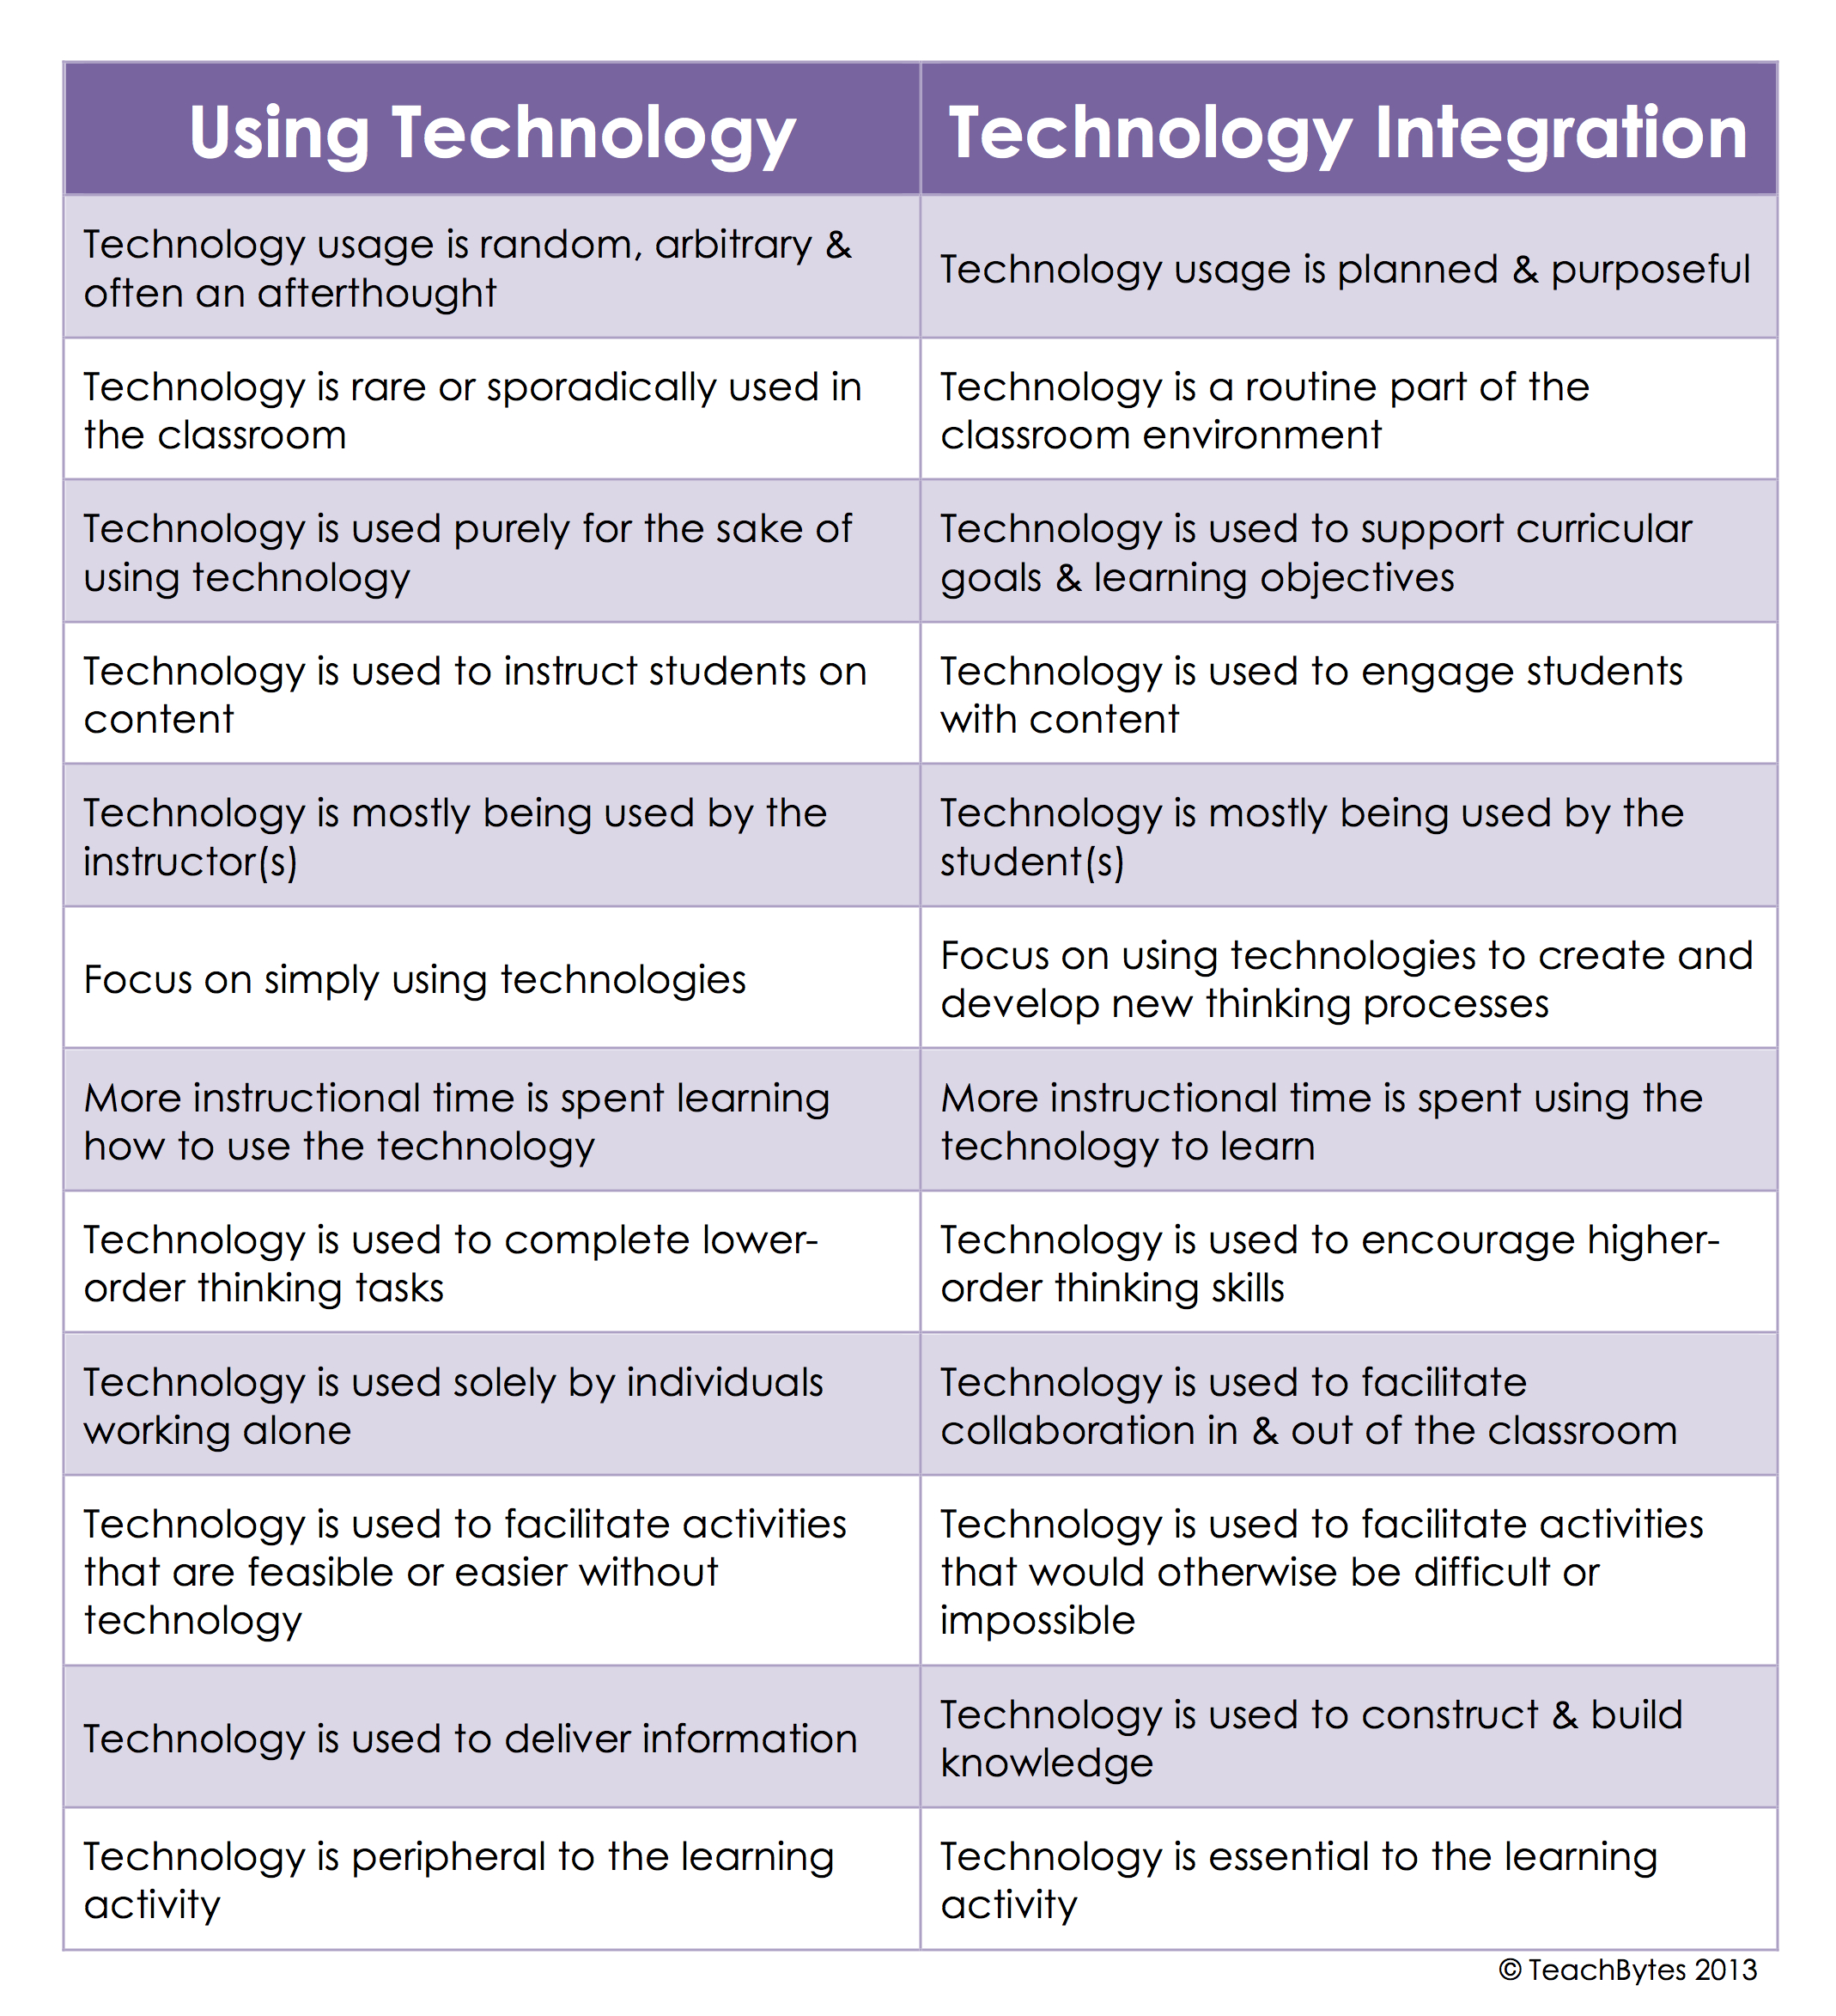 Essay on technologies in 21st century